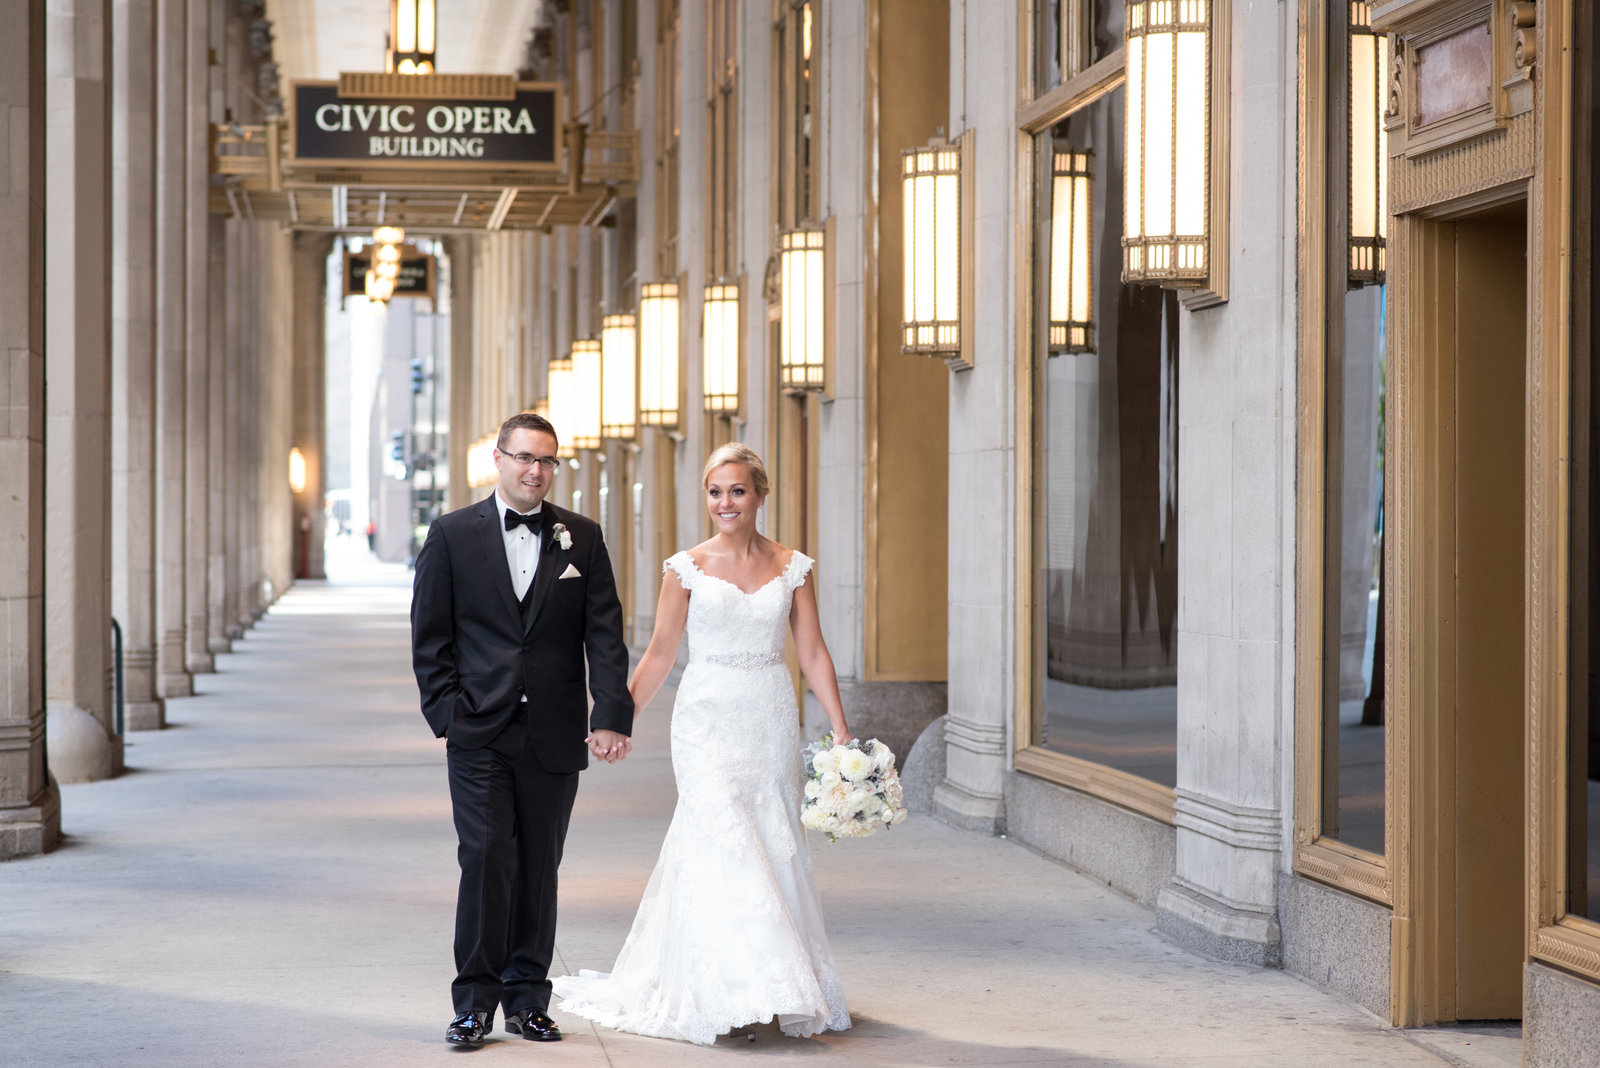 Chicago Wedding Photographer Alaina Bos-14